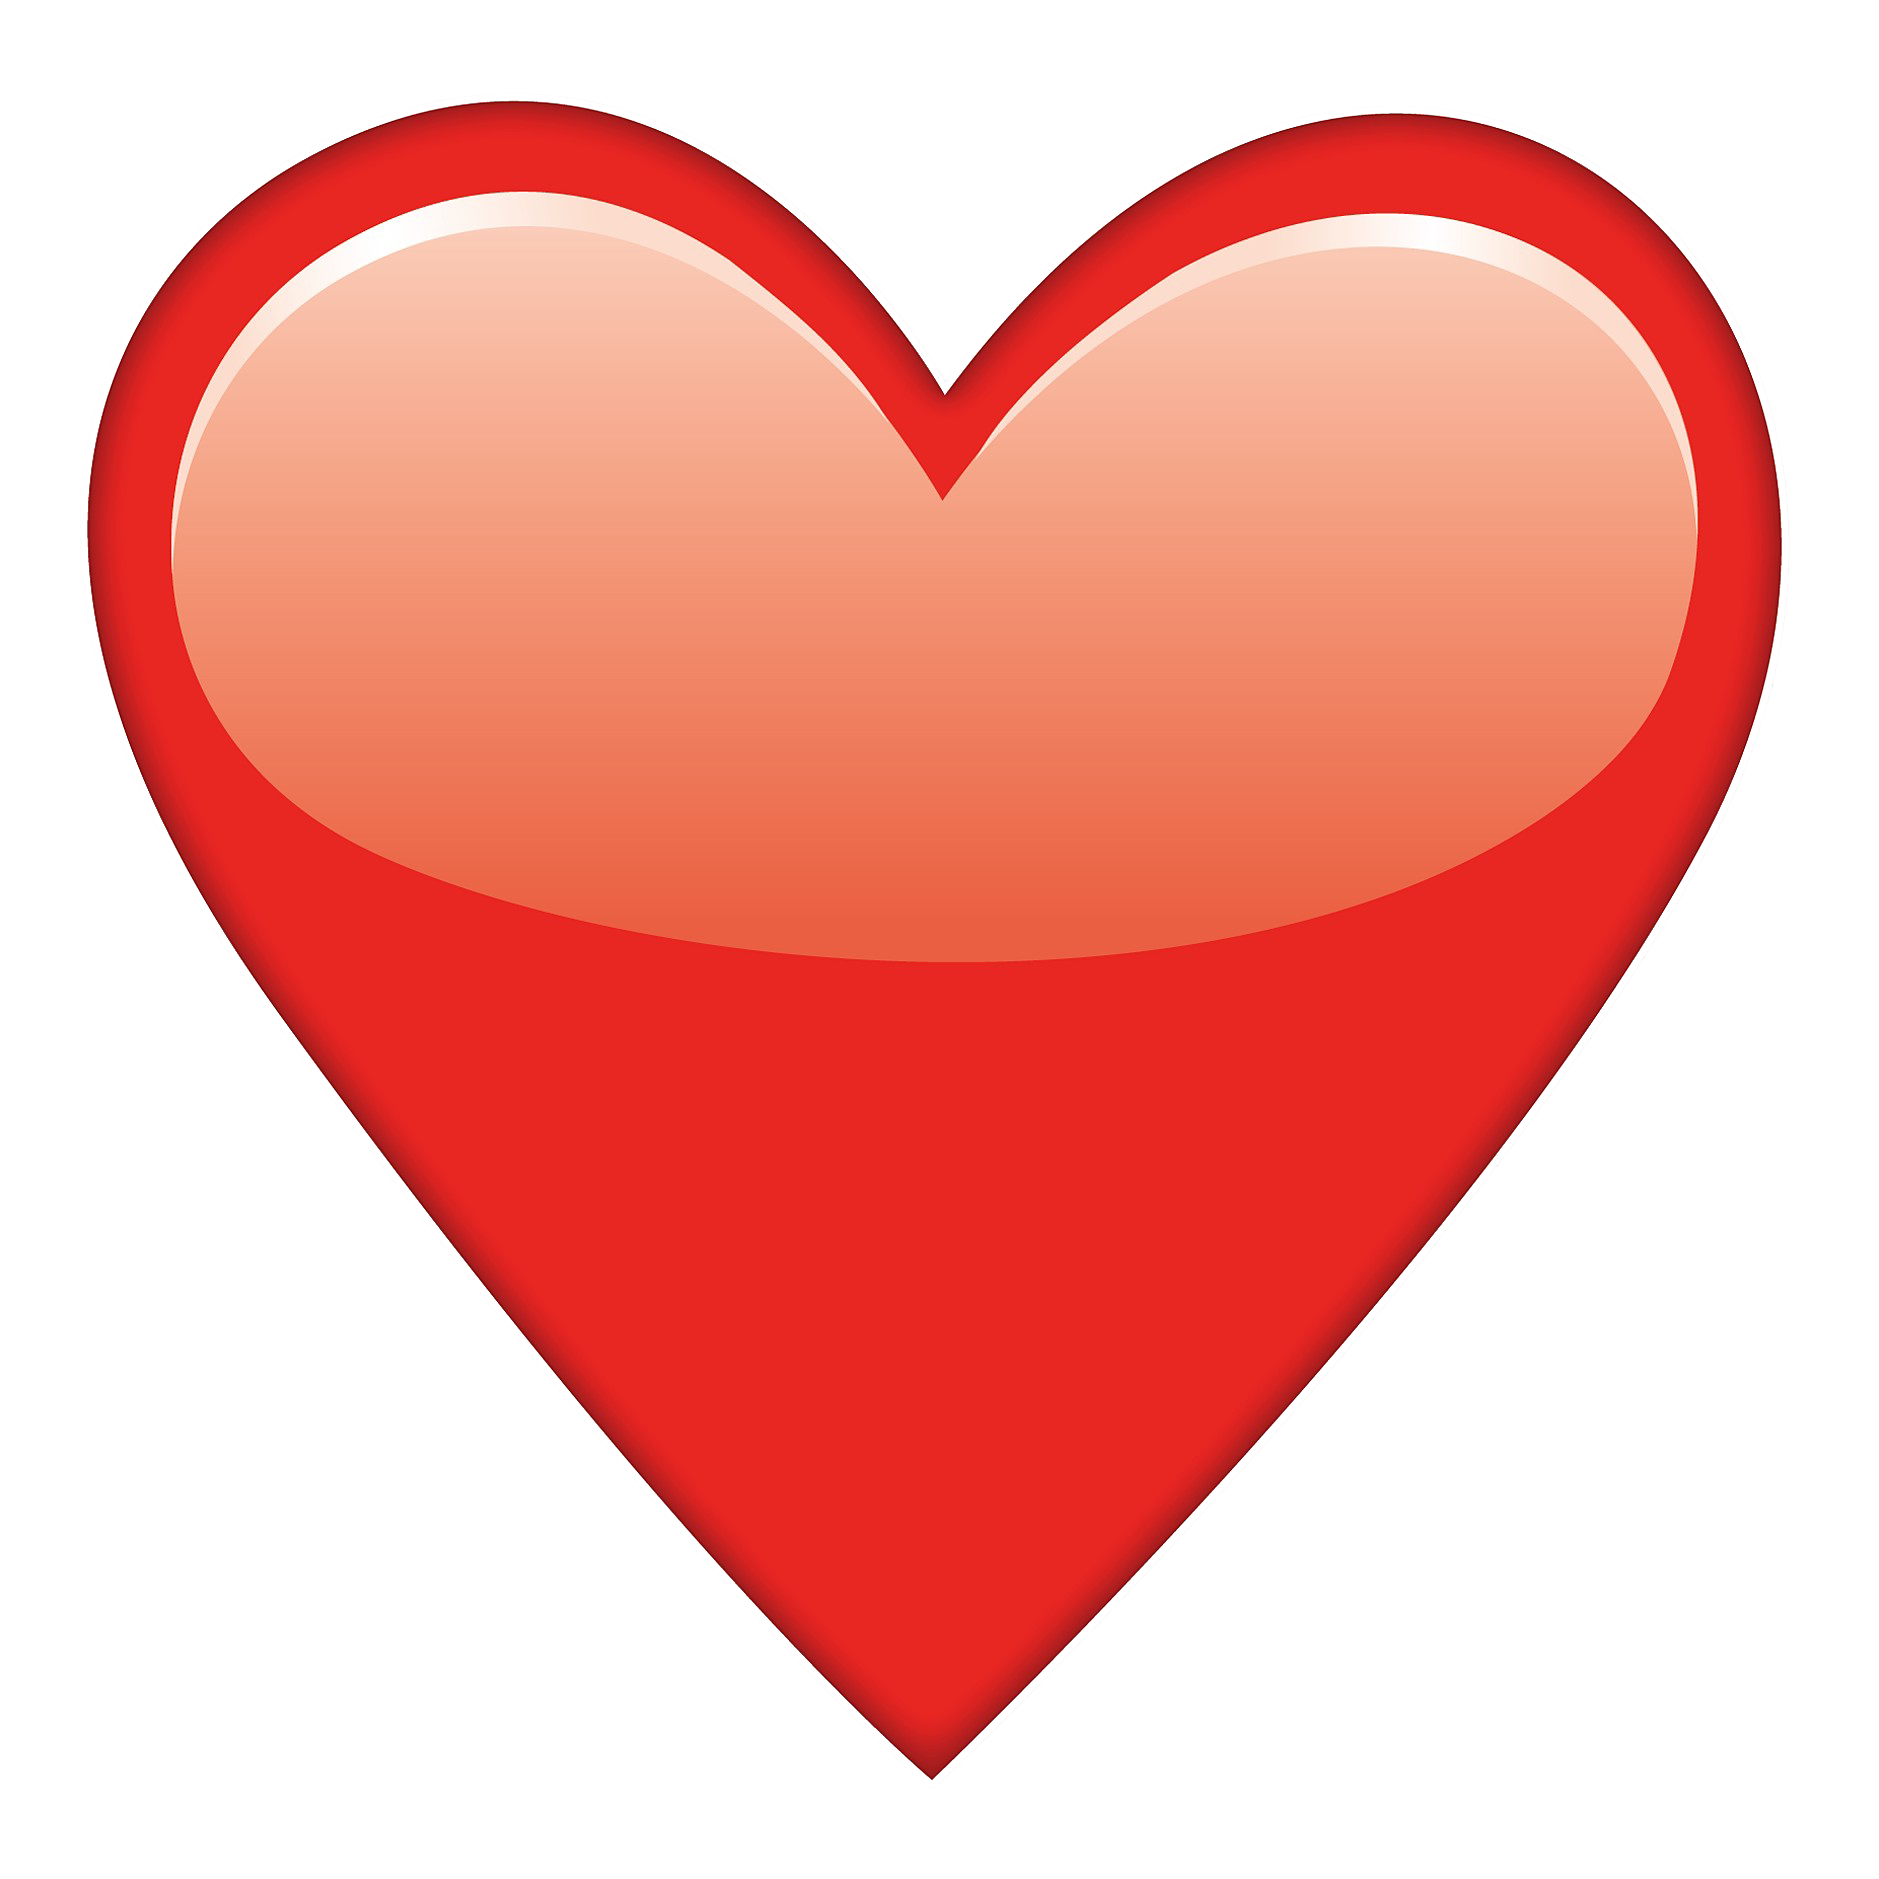 Heart eyes clipart picture free download Red Heart Emoji picture free download